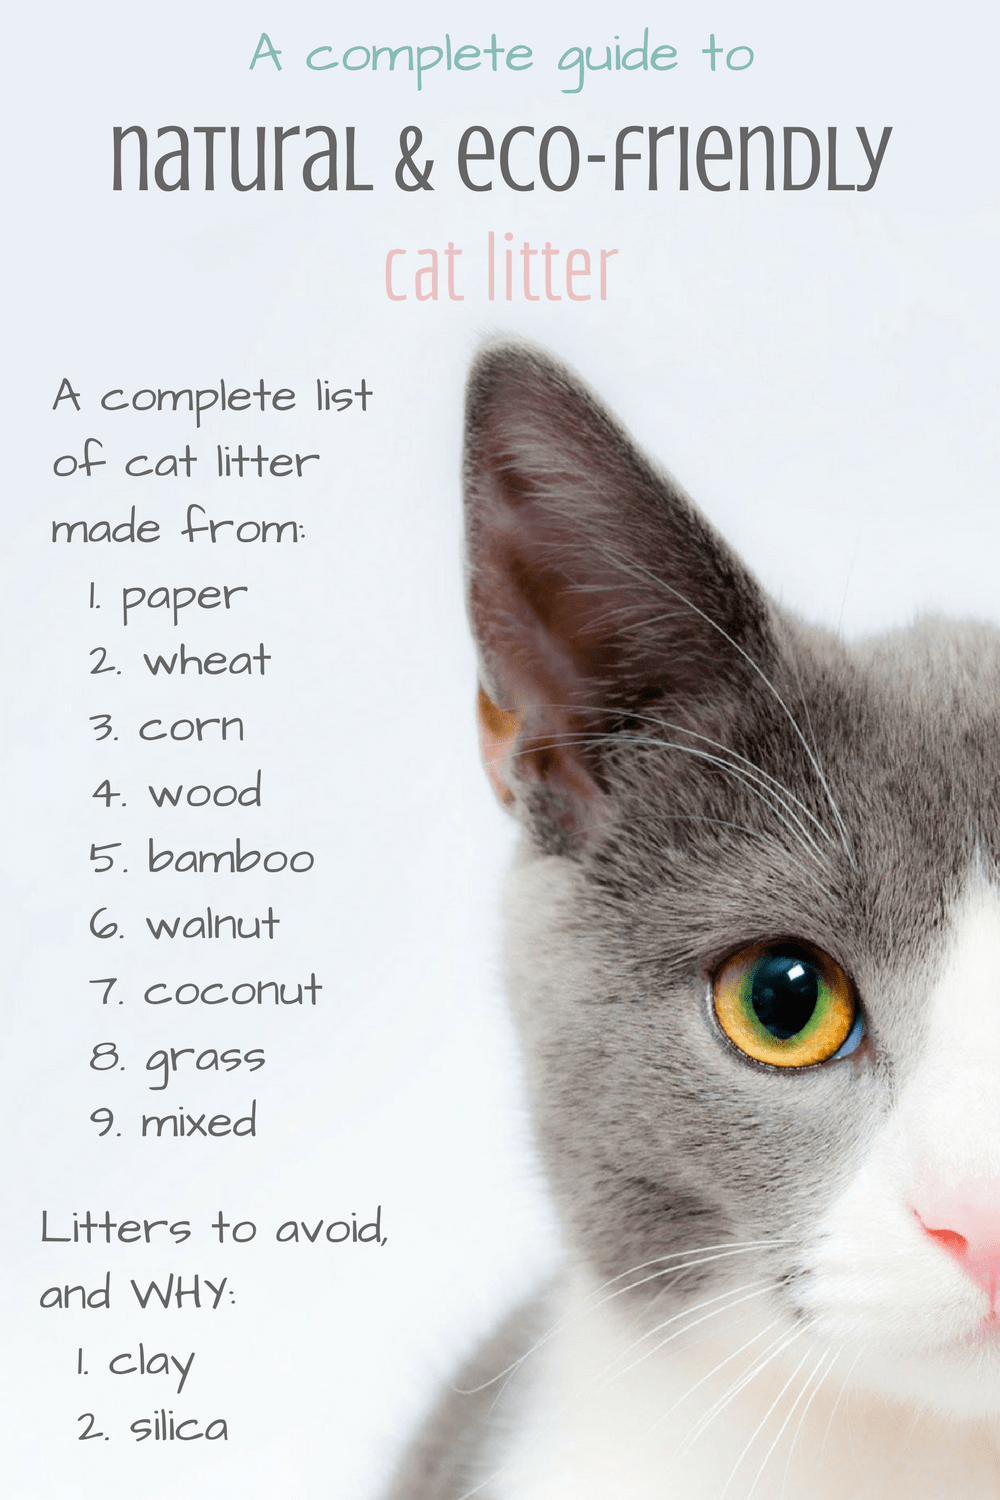 eco-friendly cat litters: a guide to the best natural cat litter